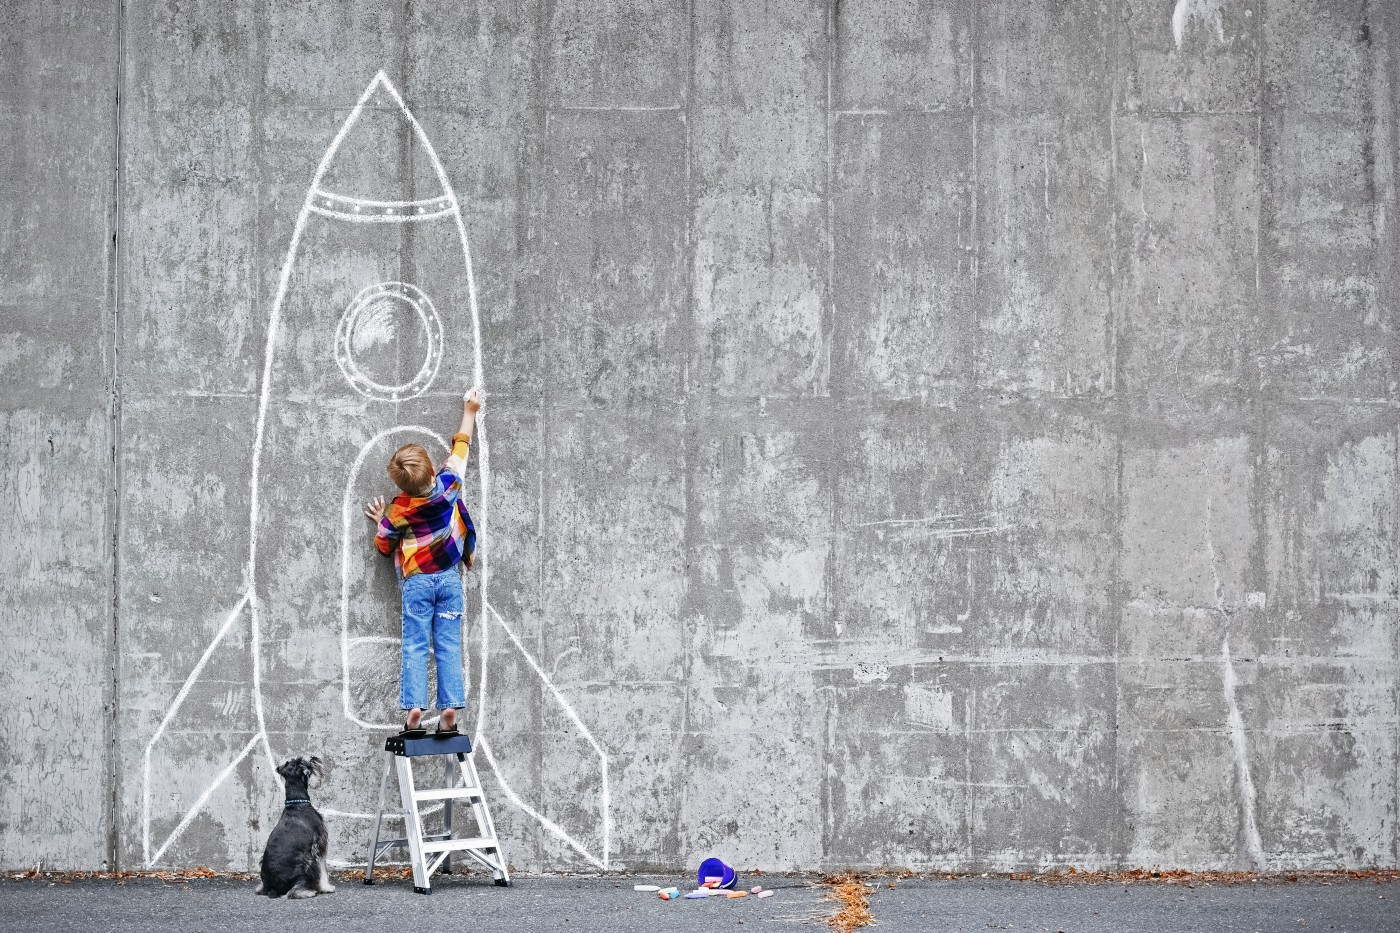 A young child stands on a short step ladder and uses white chalk to draw a rocket ship on a grey wall. A miniature schnauzer sits to the left of the child, watching.